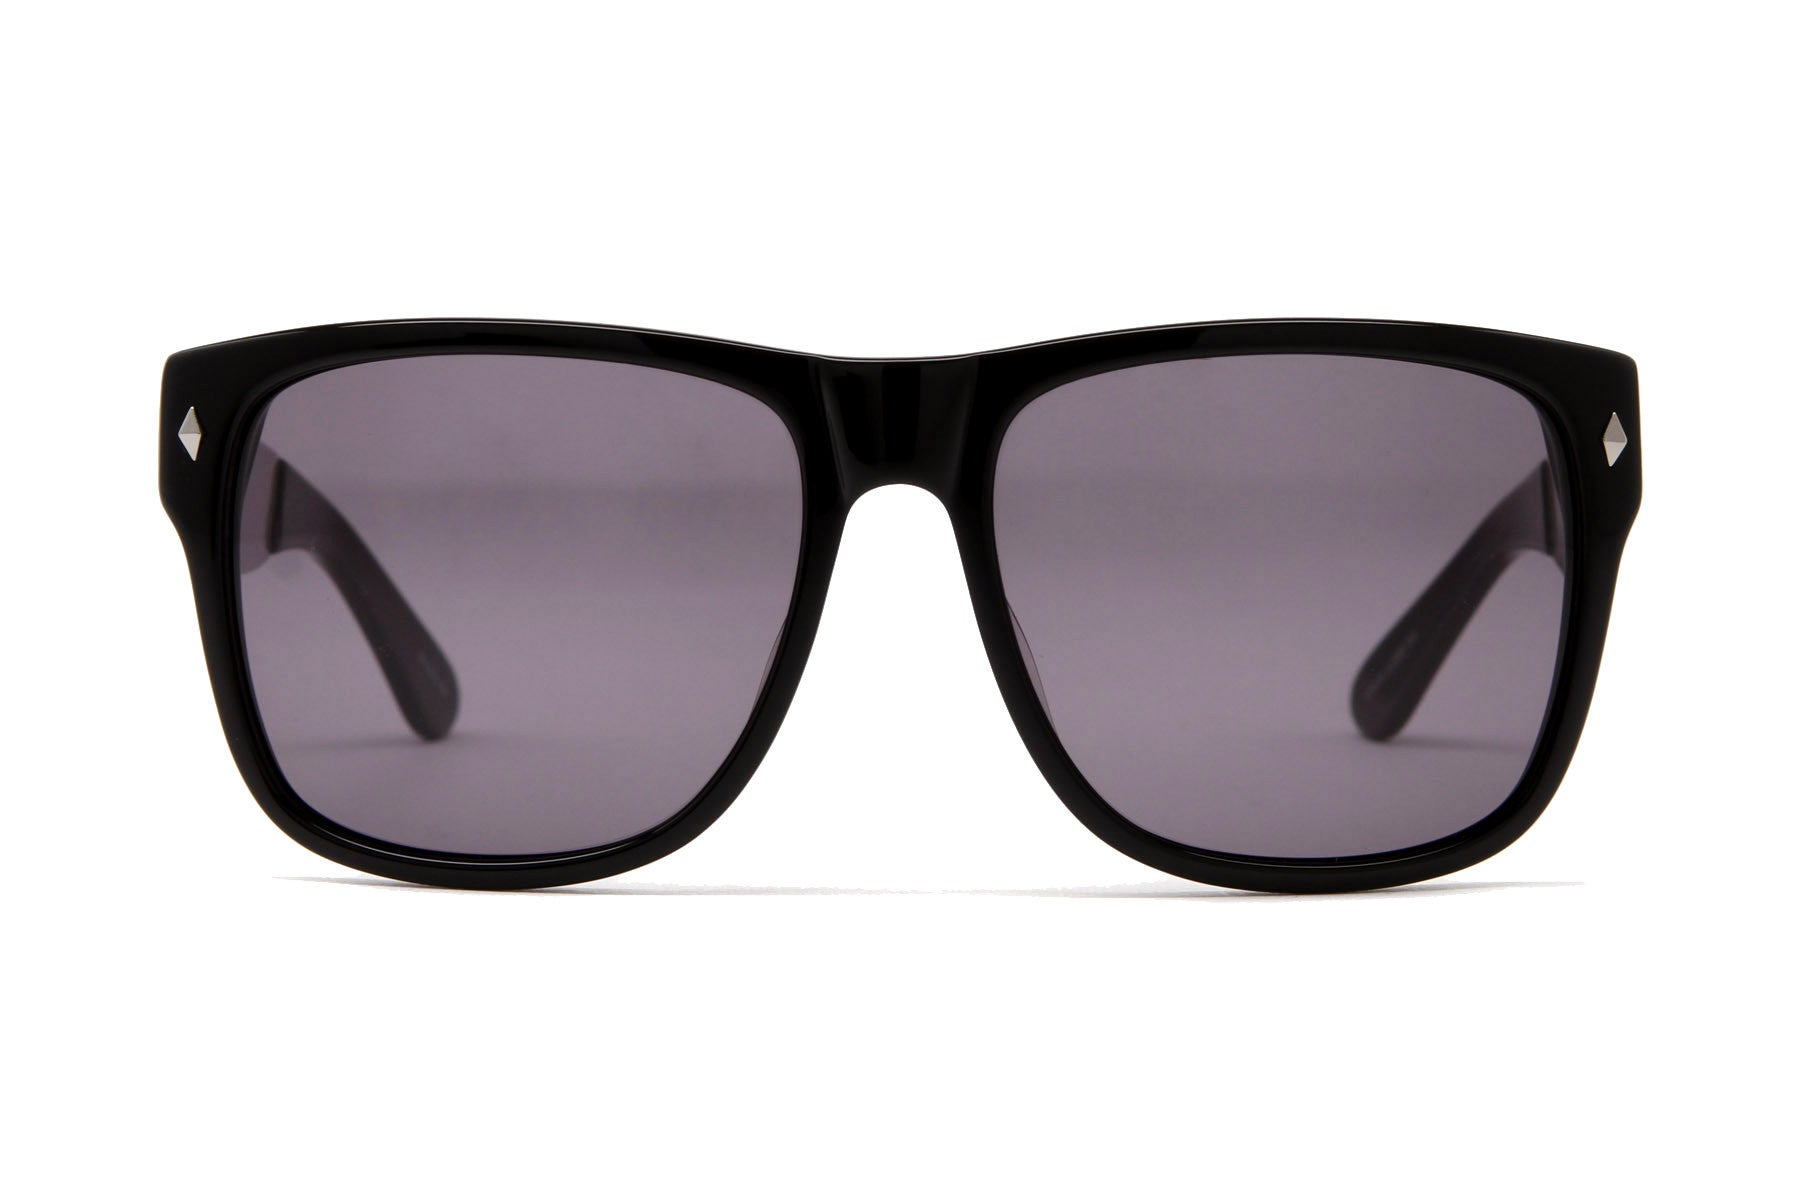 Gunclub Sunglasses (Matte Black/Silver Temple/Gray)